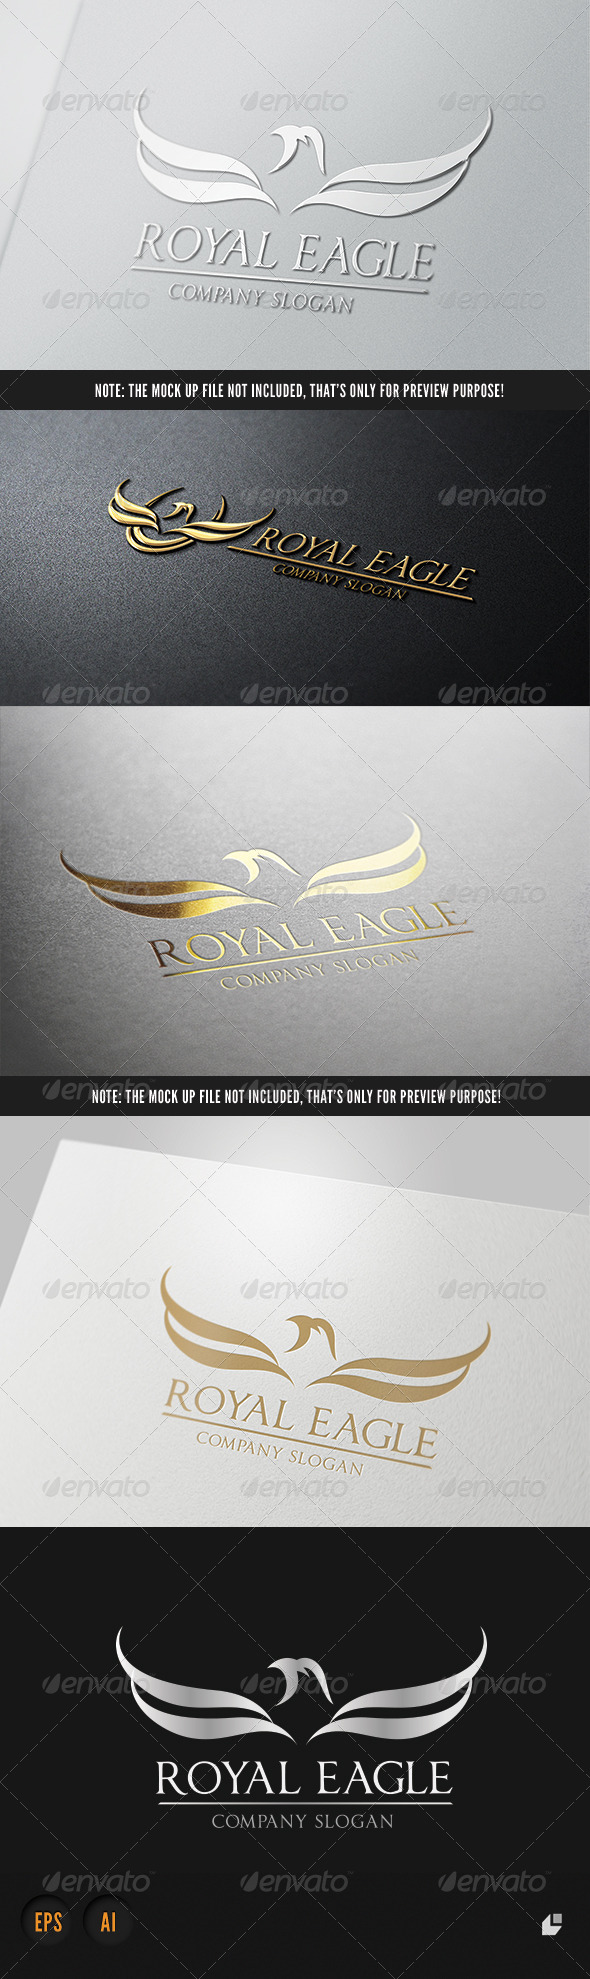 Royal Eagle Logo III - Crests Logo Templates